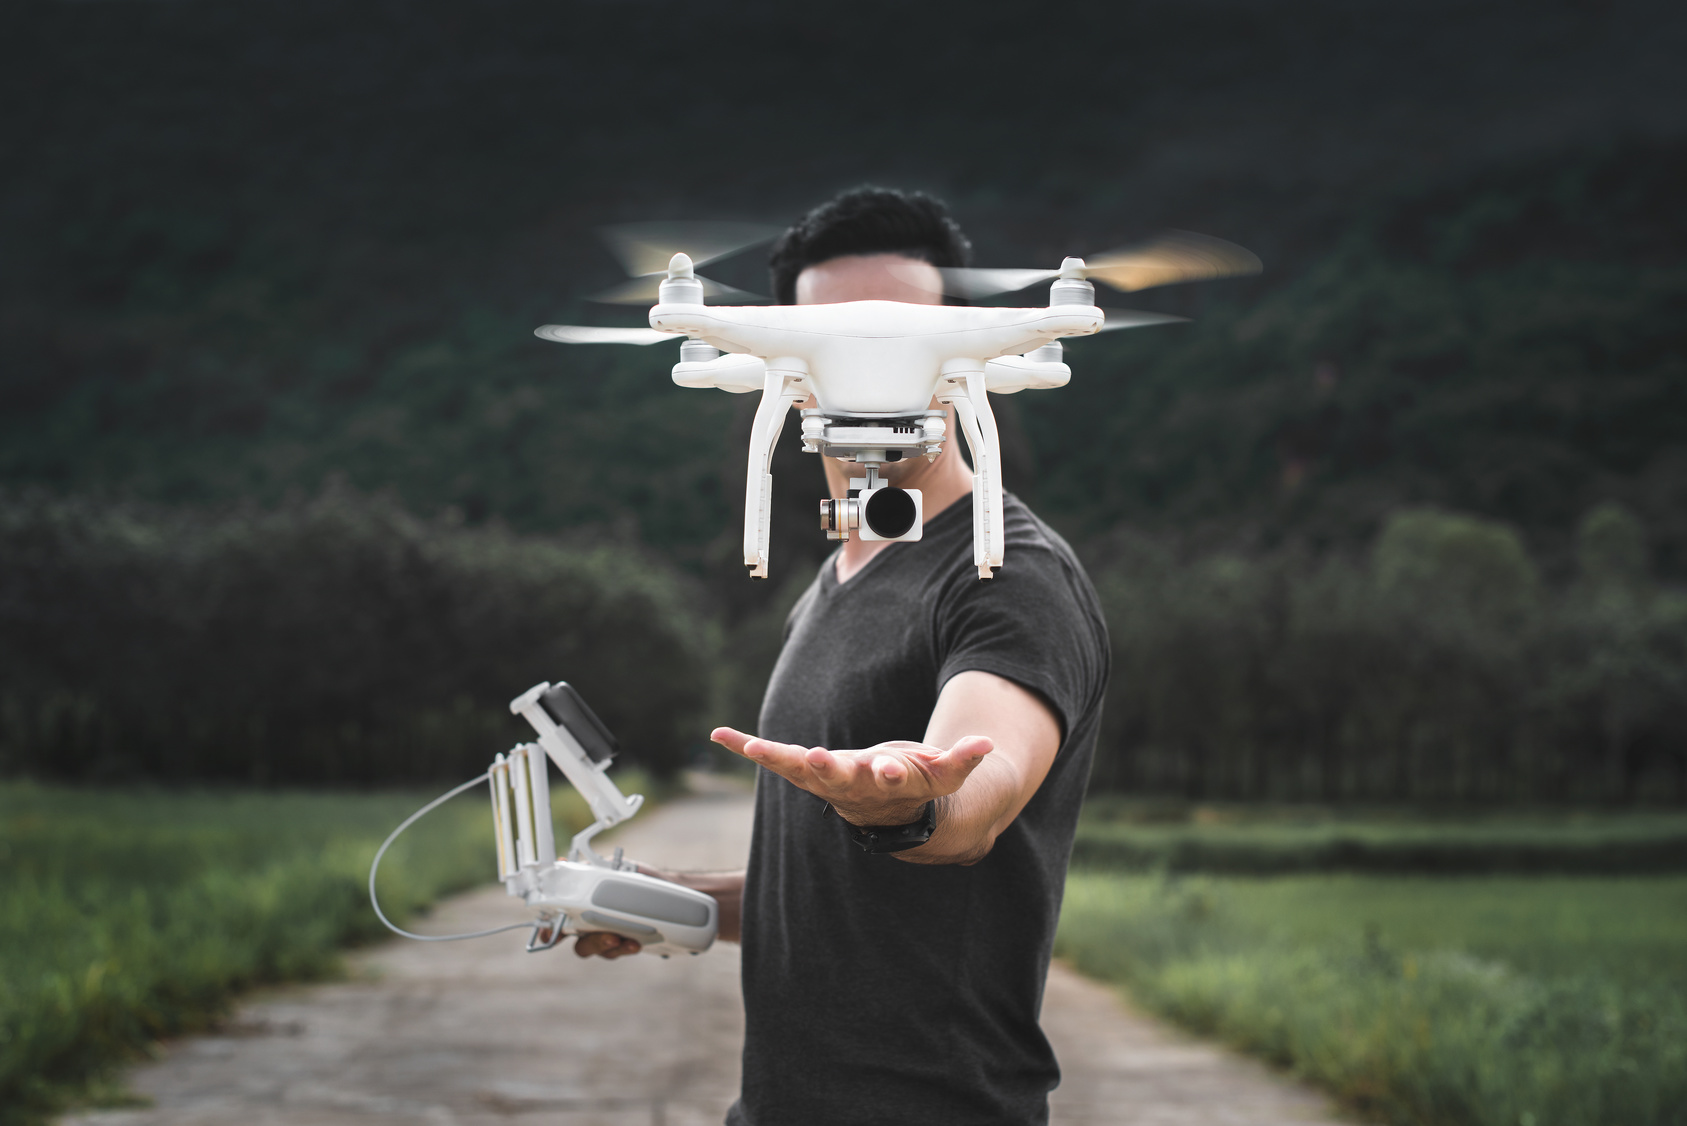 The Best Drones Money Can Buy In 2019 Reviewed & Compared